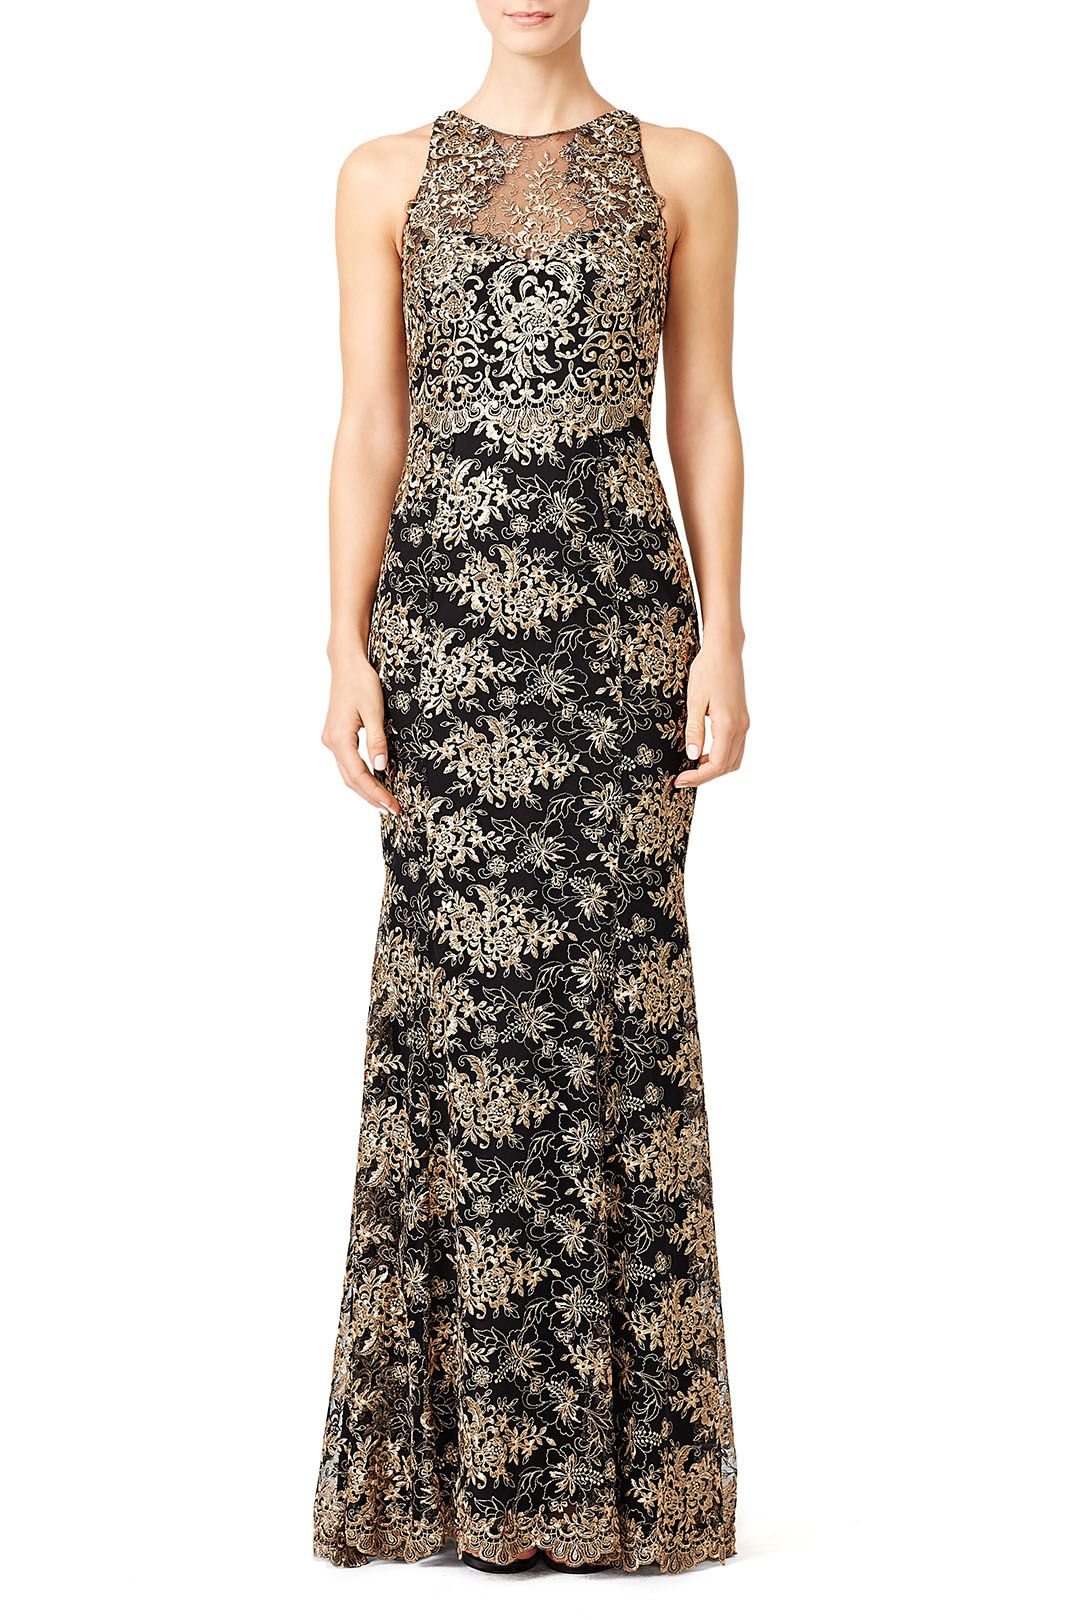 Rent Gilded Garden Gown by Marchesa Notte for $200 only at Rent the ...